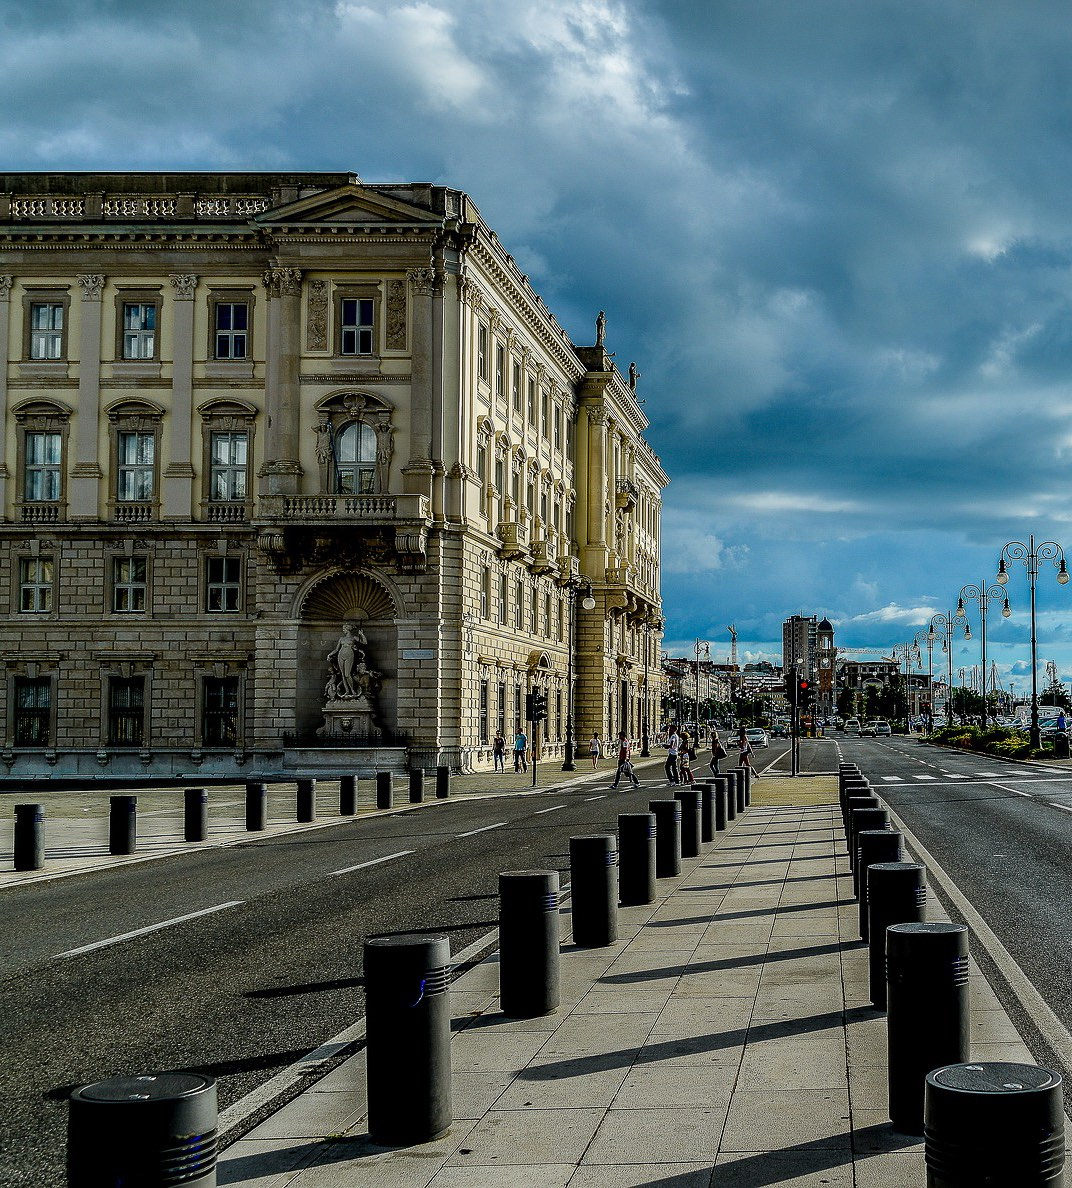 A view of Trieste, the elegant port city on the Adriatic